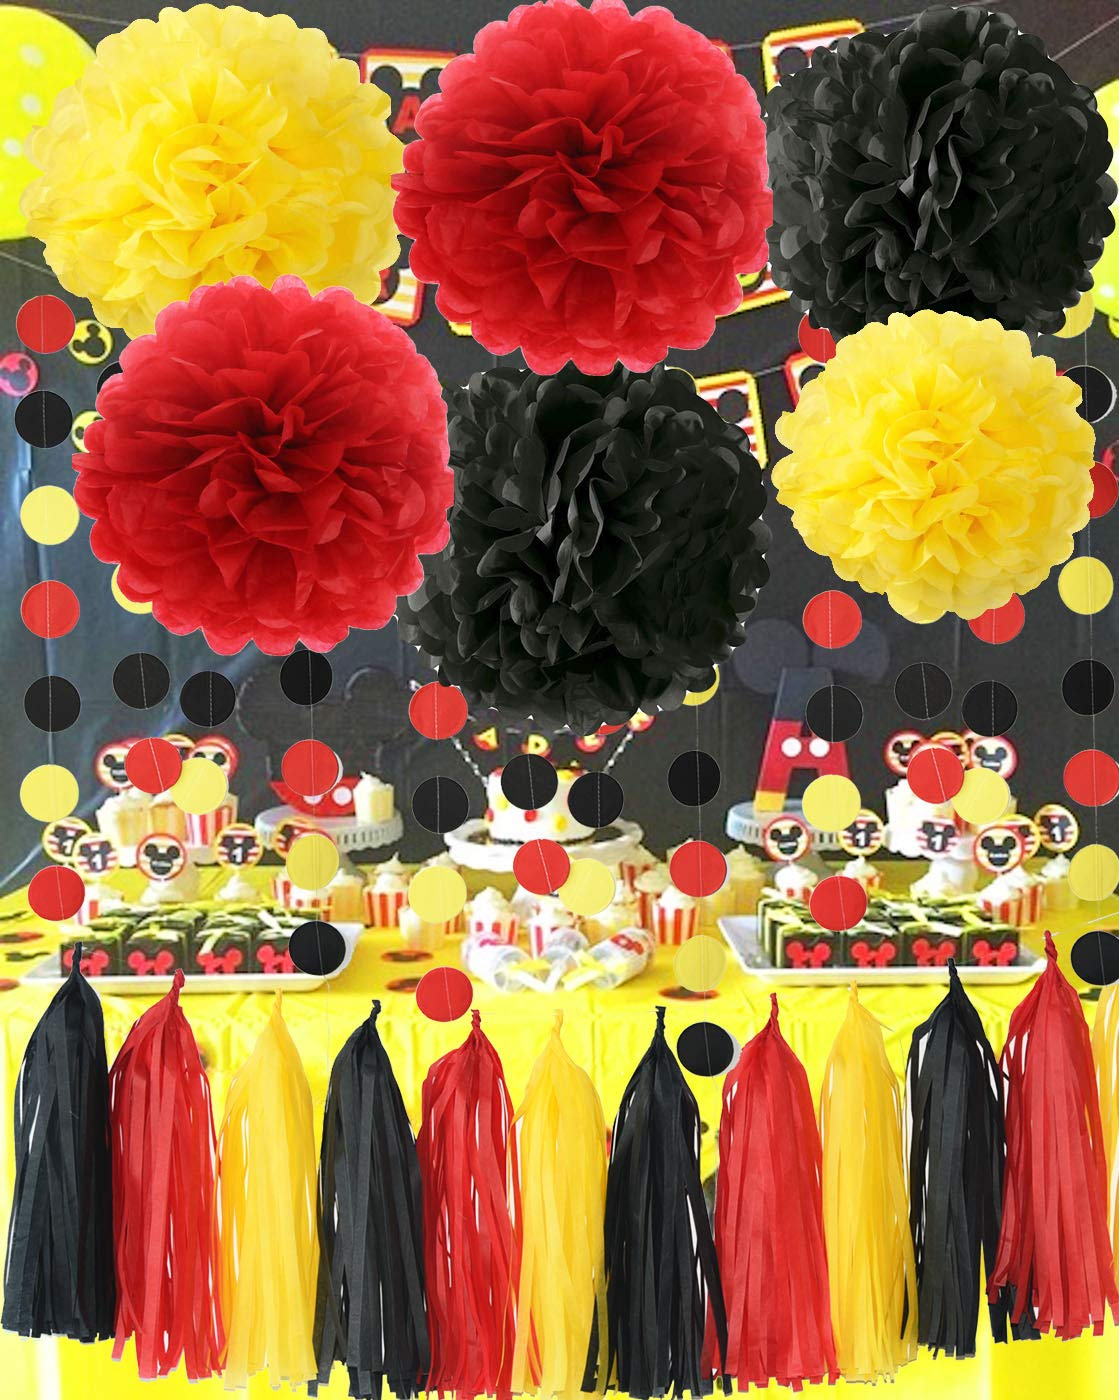 Mickey Mouse Party Supplies Yellow Black Red Tissue Paper Pom Pom Tassel Garland Mickey Garland Mickey Mouse Theme Birthday Party Decorations by Qian's Party